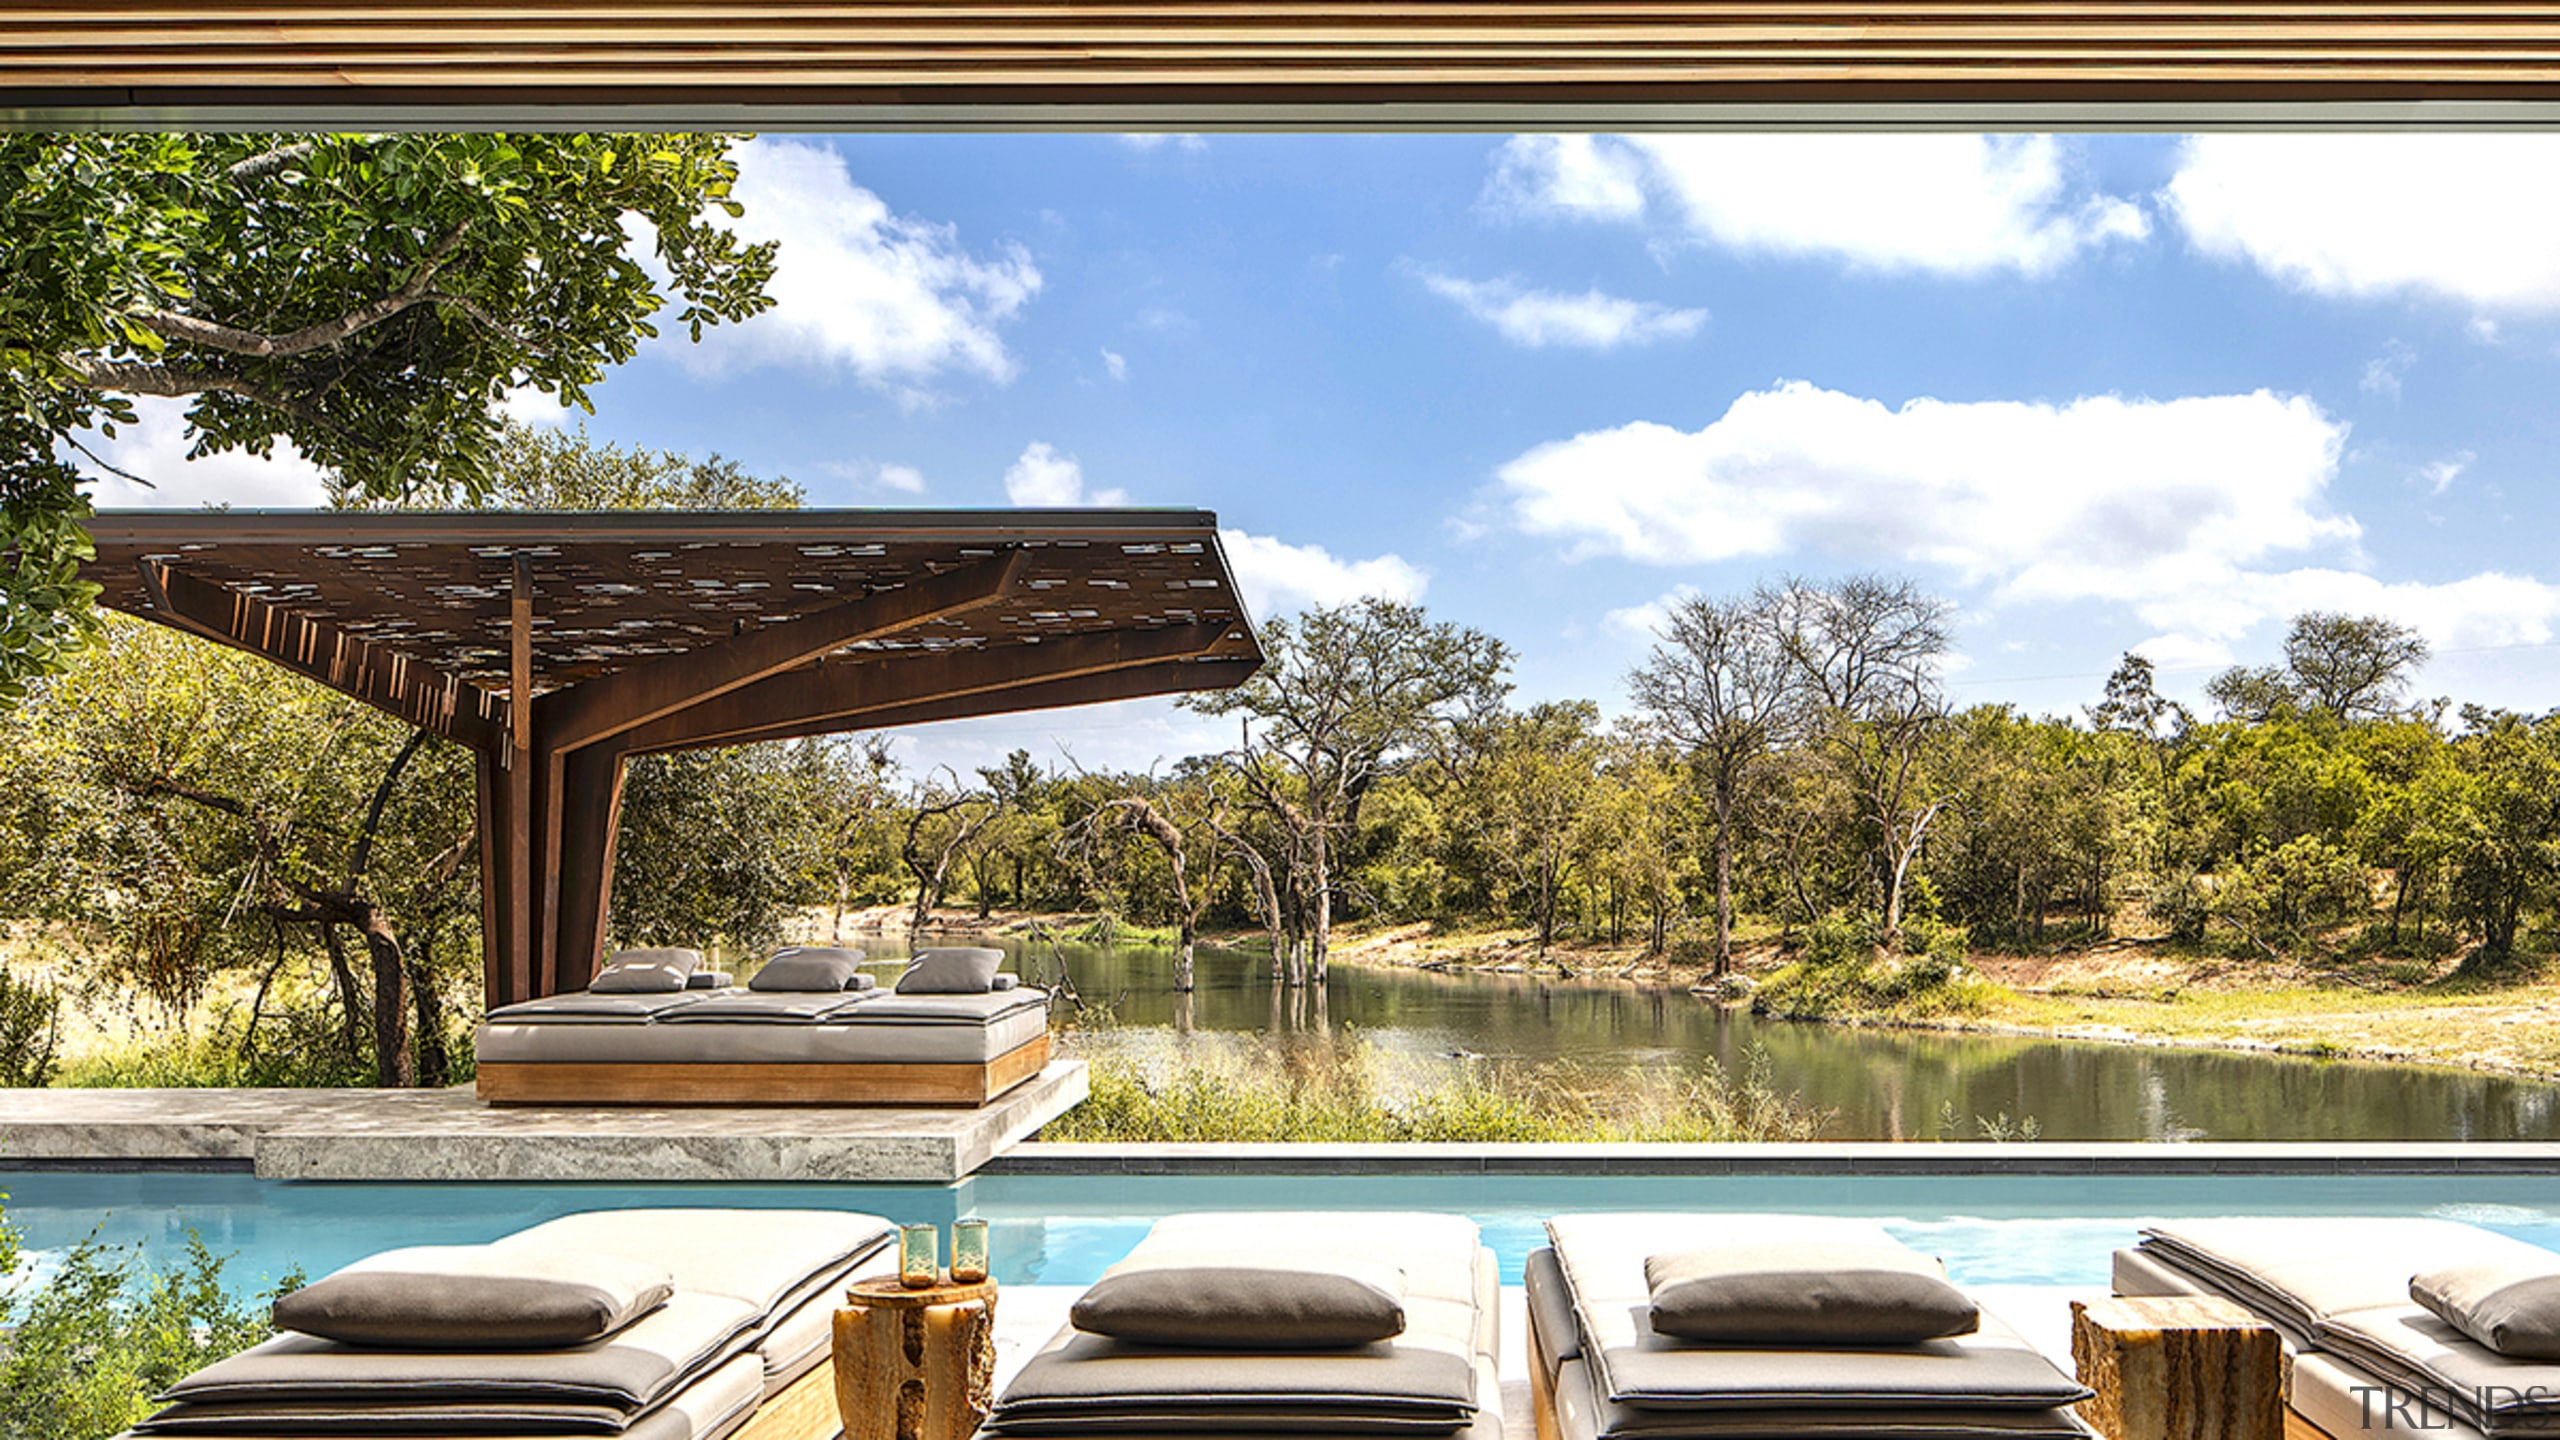 At the new Cheetah Plains lodge in Kruger backyard, building, deck, furniture, home, house, interior design, landscape, landscaping, leisure, natural landscape, outdoor furniture, patio, property, real estate, room, shade, table, tree, brown, white